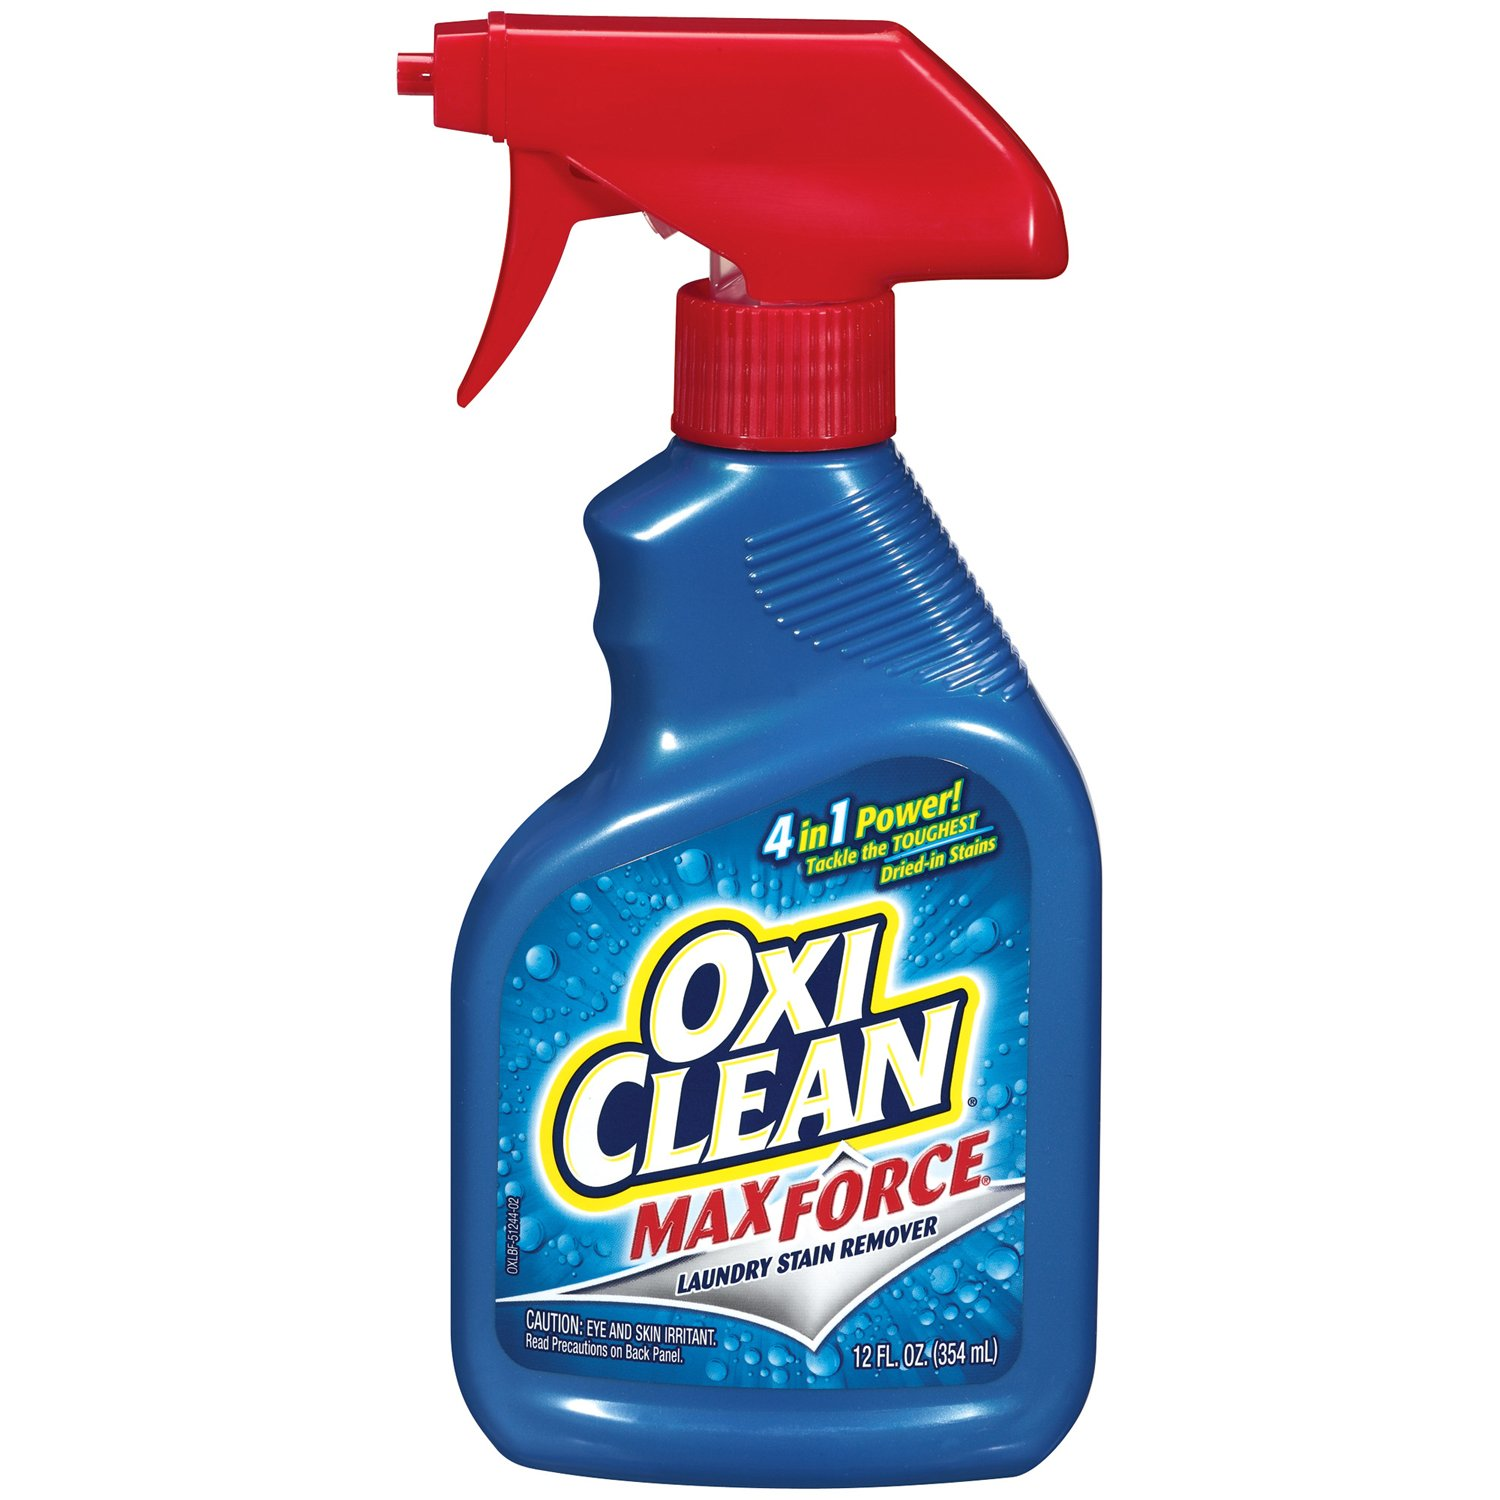 Arm & Hammer 57037-51244 OxiClean Max Force Laundry Stain Remover Spray, 12 oz (Pack of 12)